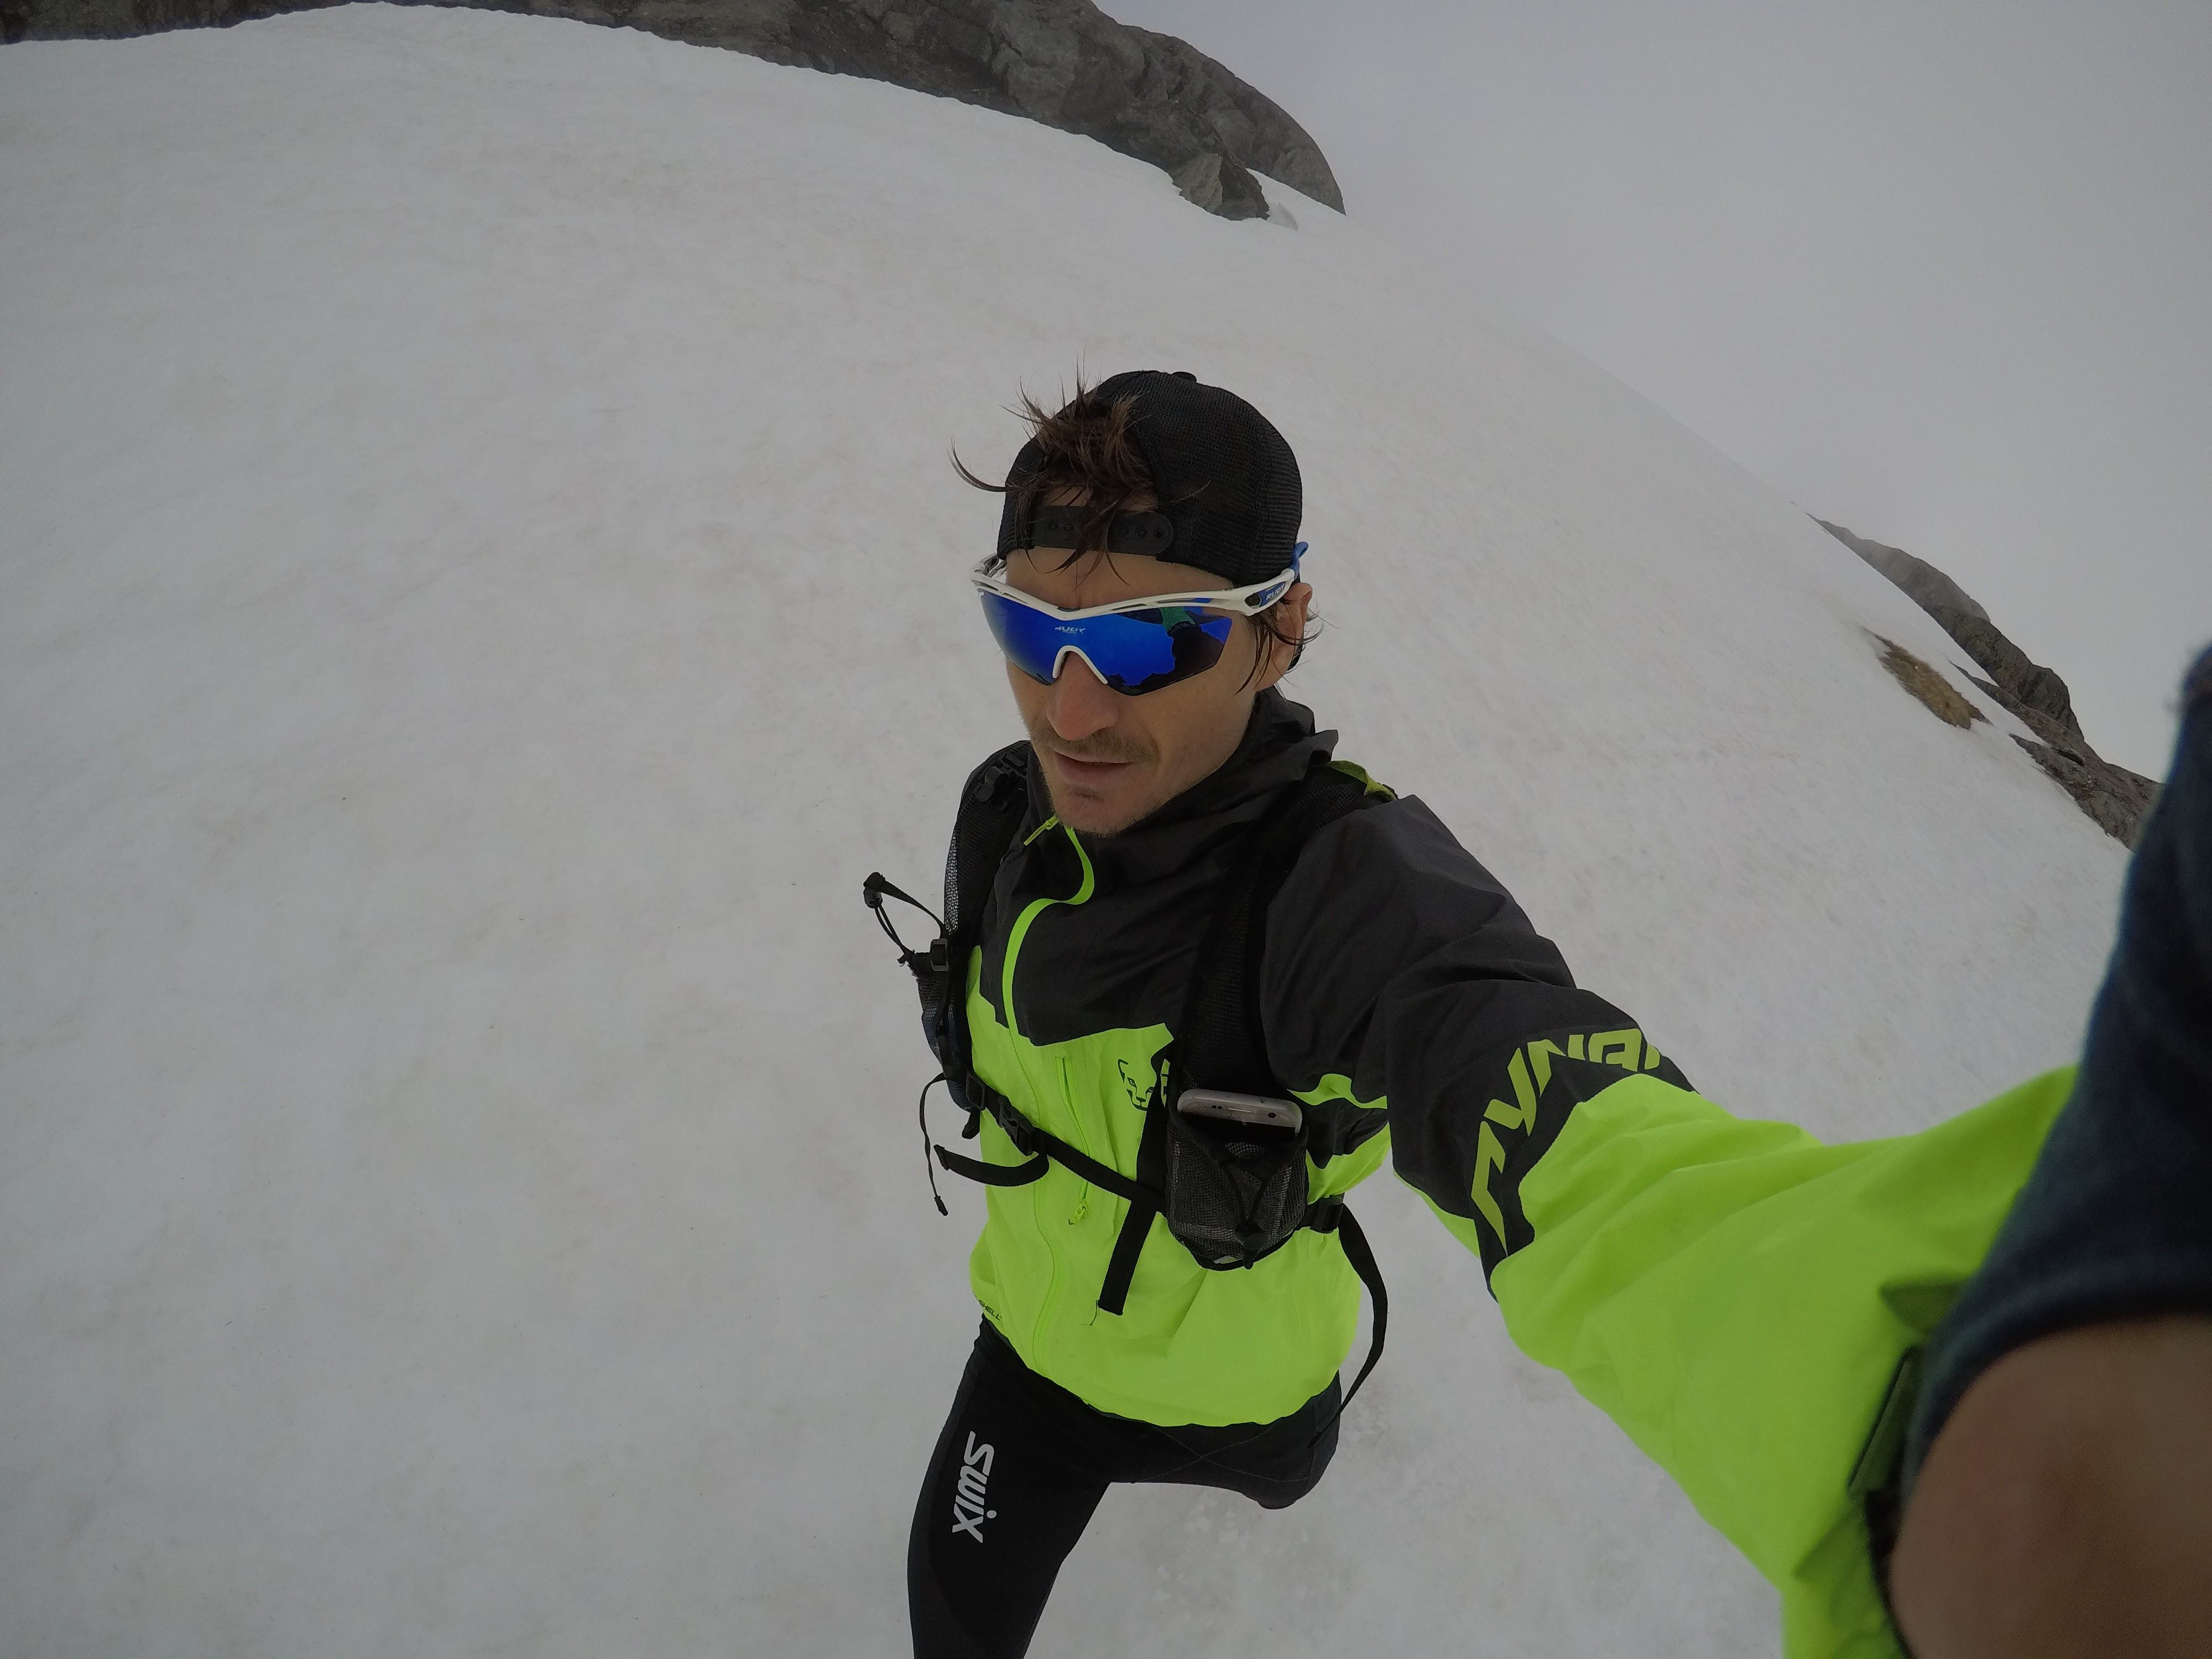 Guided trail running at Vikafjellet